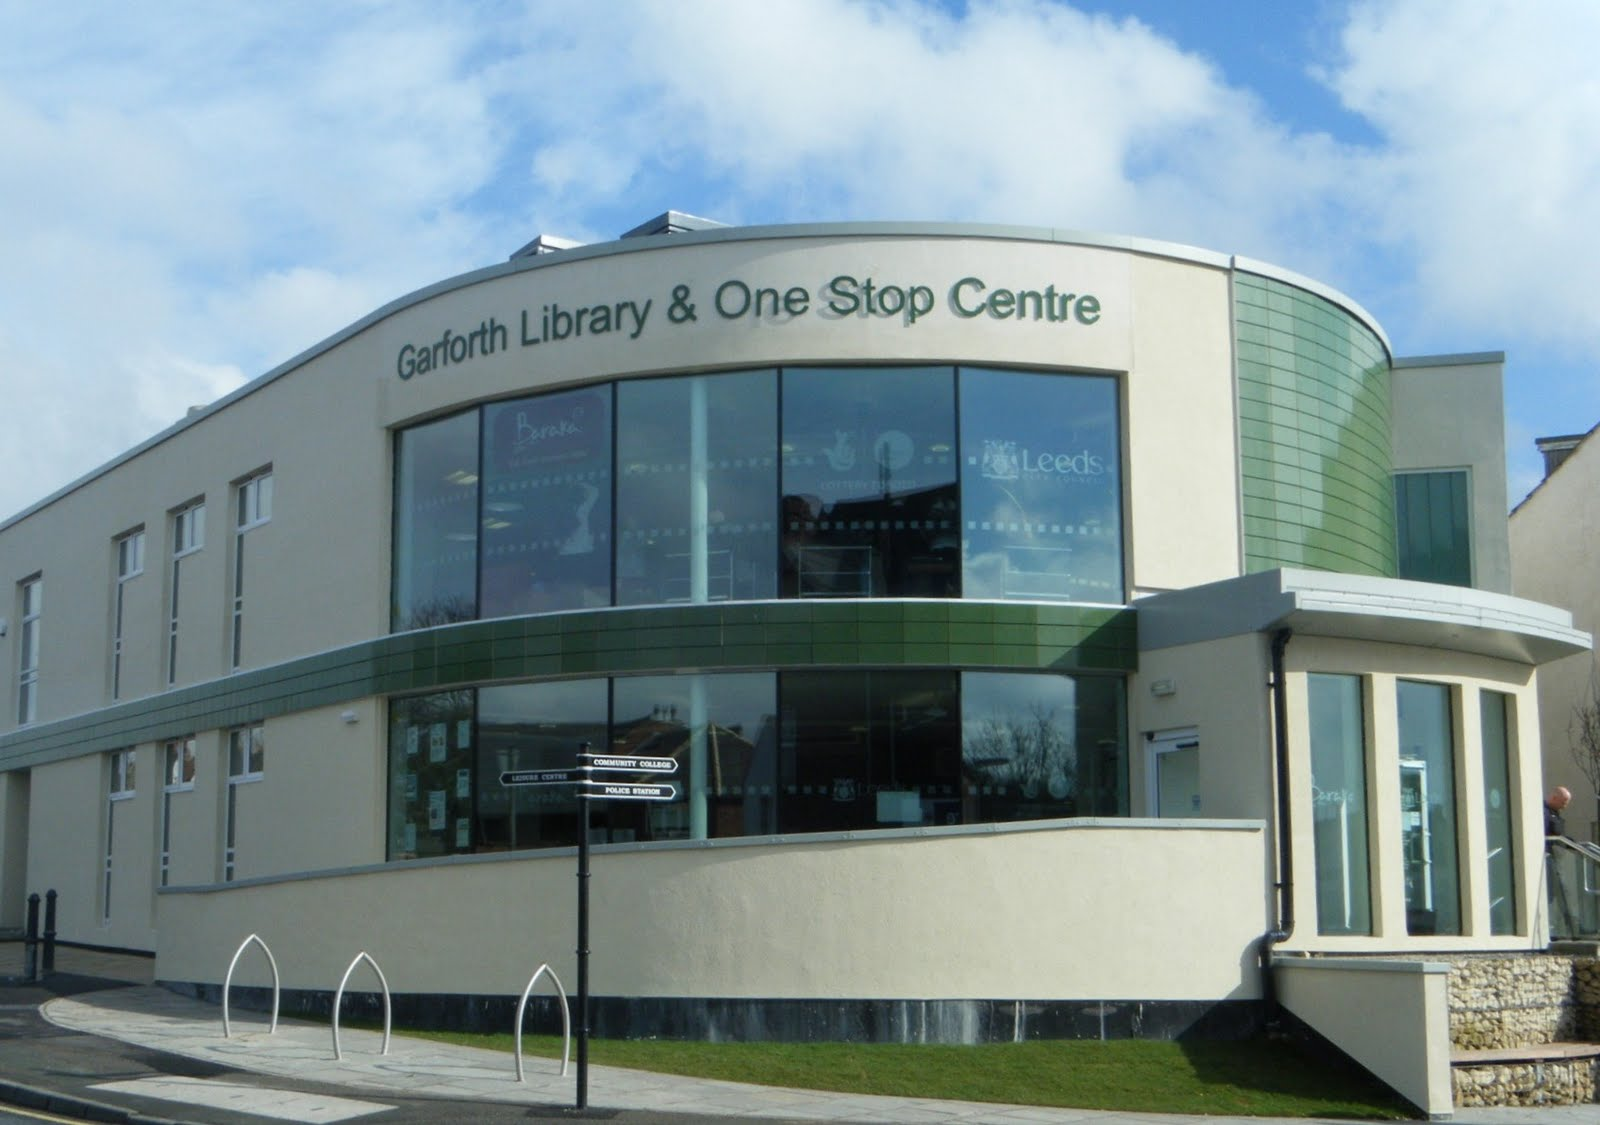 New Garforth Library and One Stop Centre